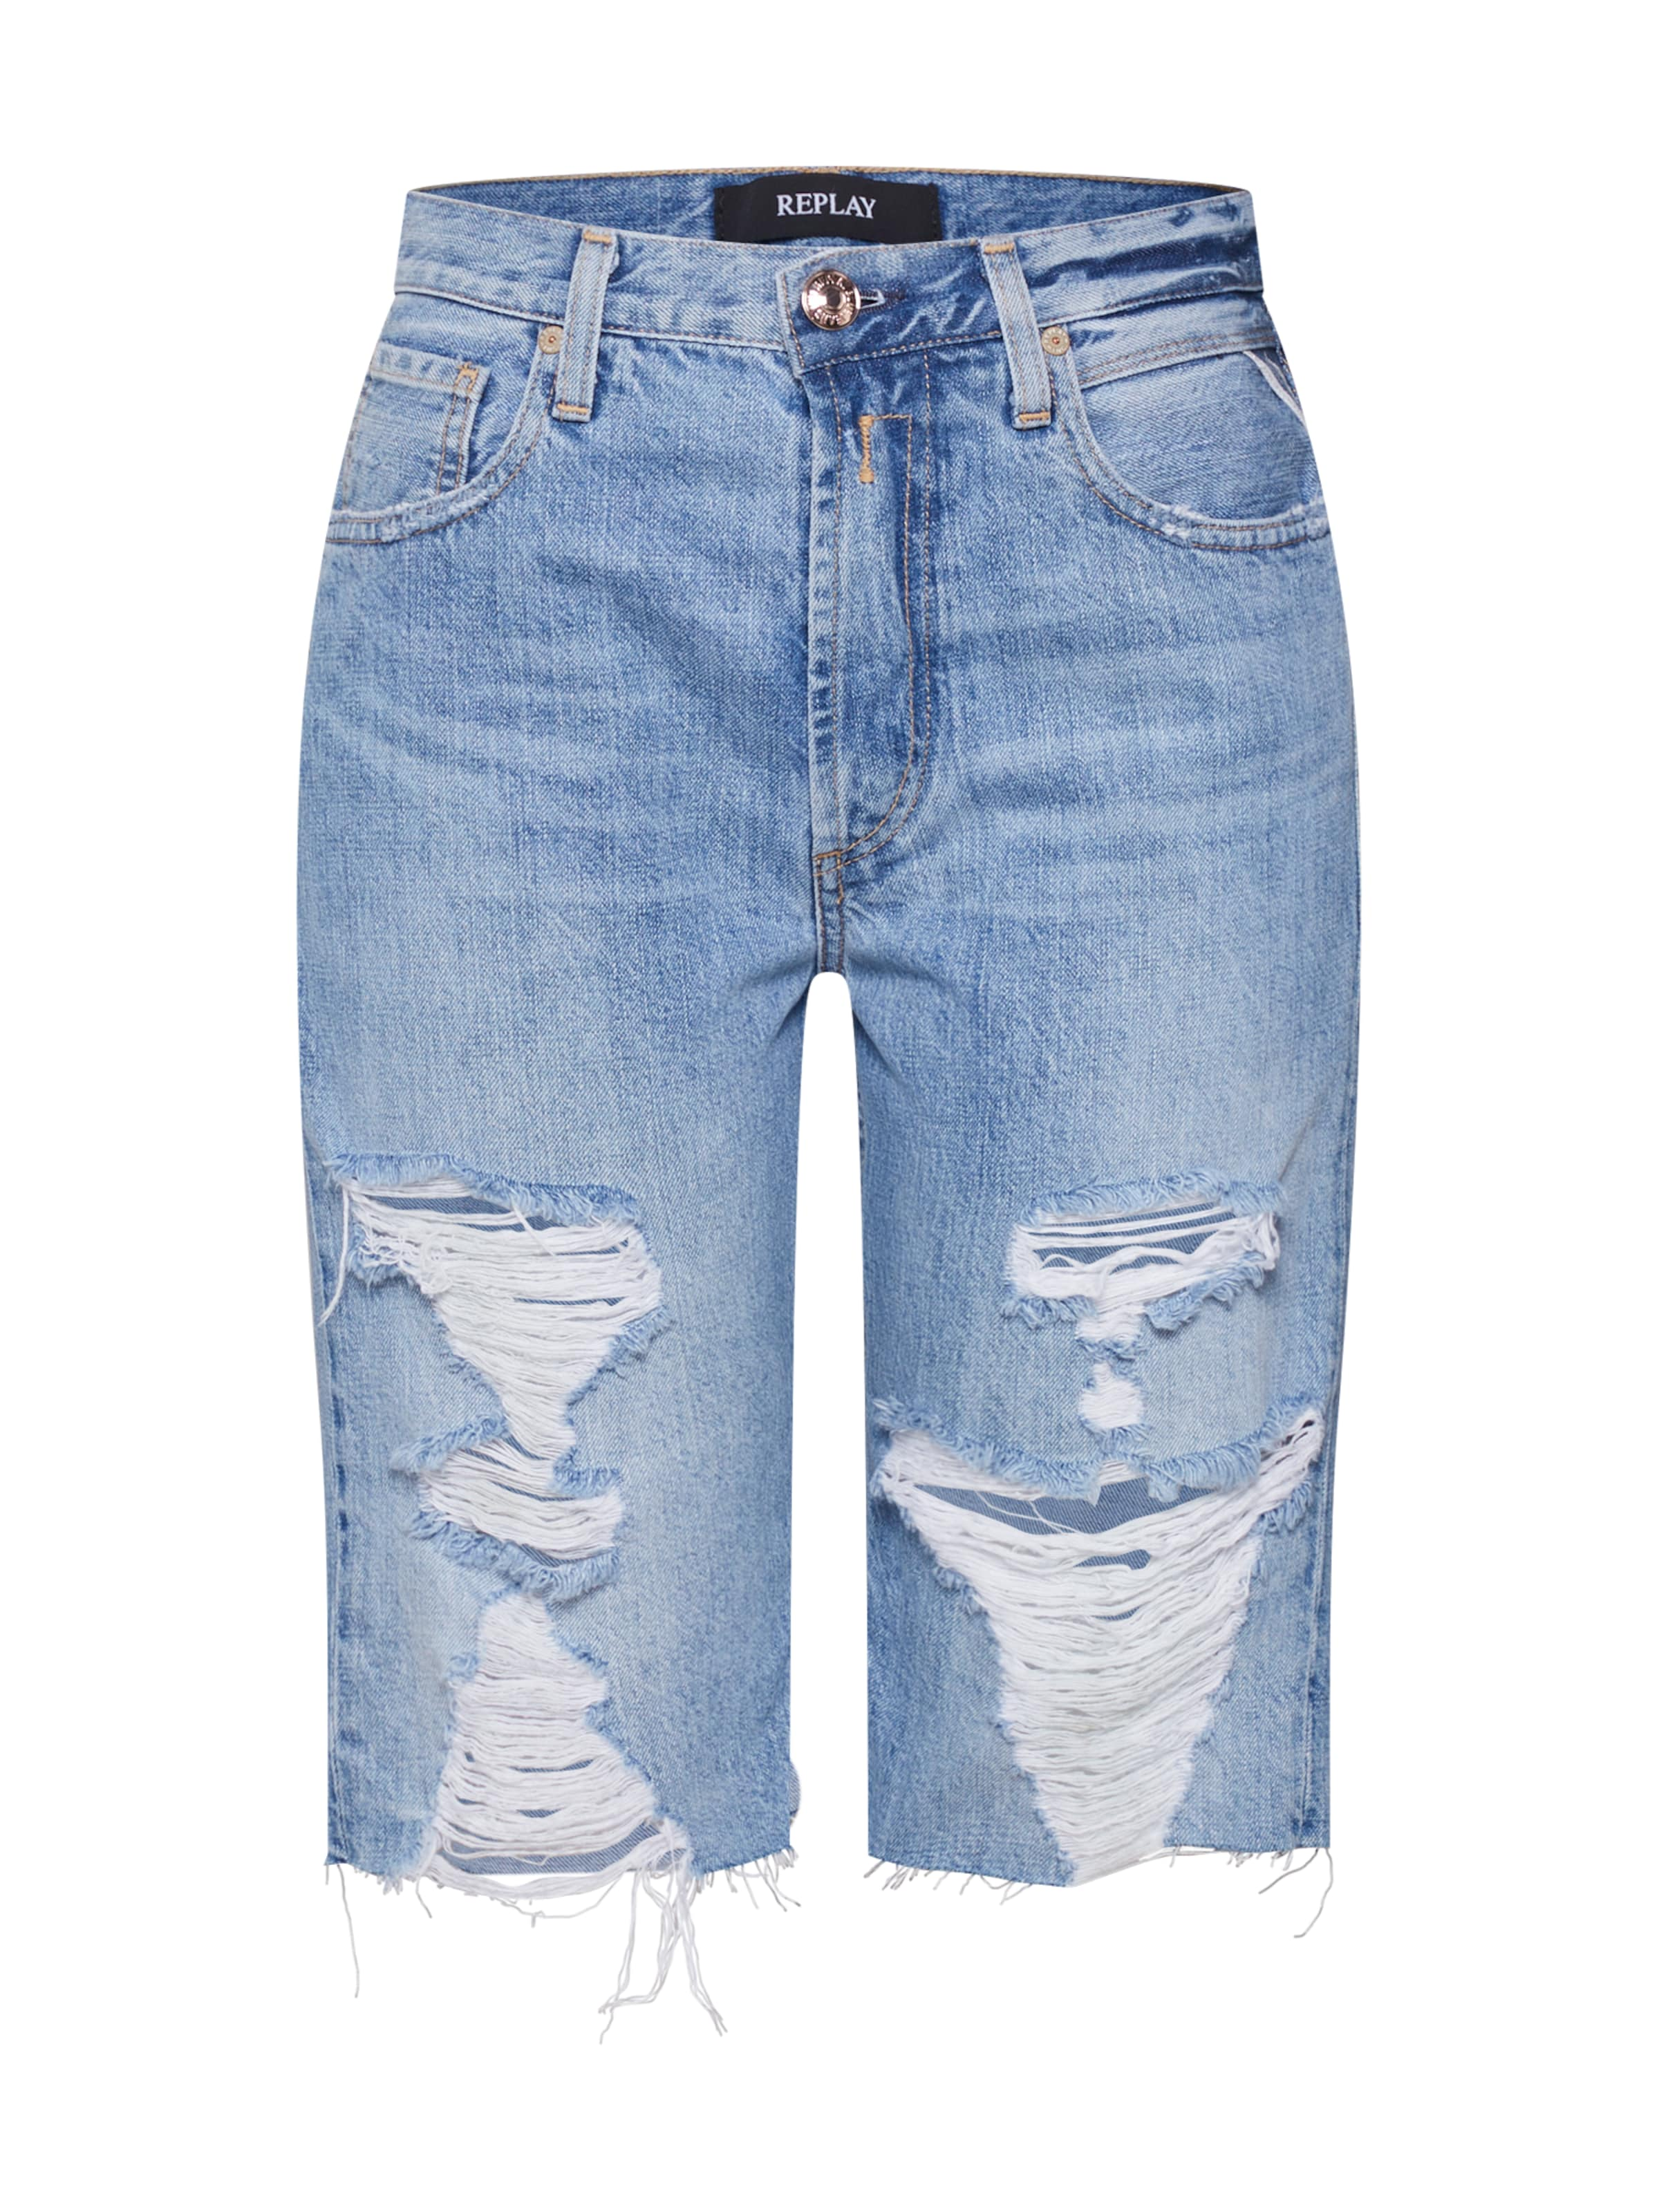 REPLAY Shorts in blue denim